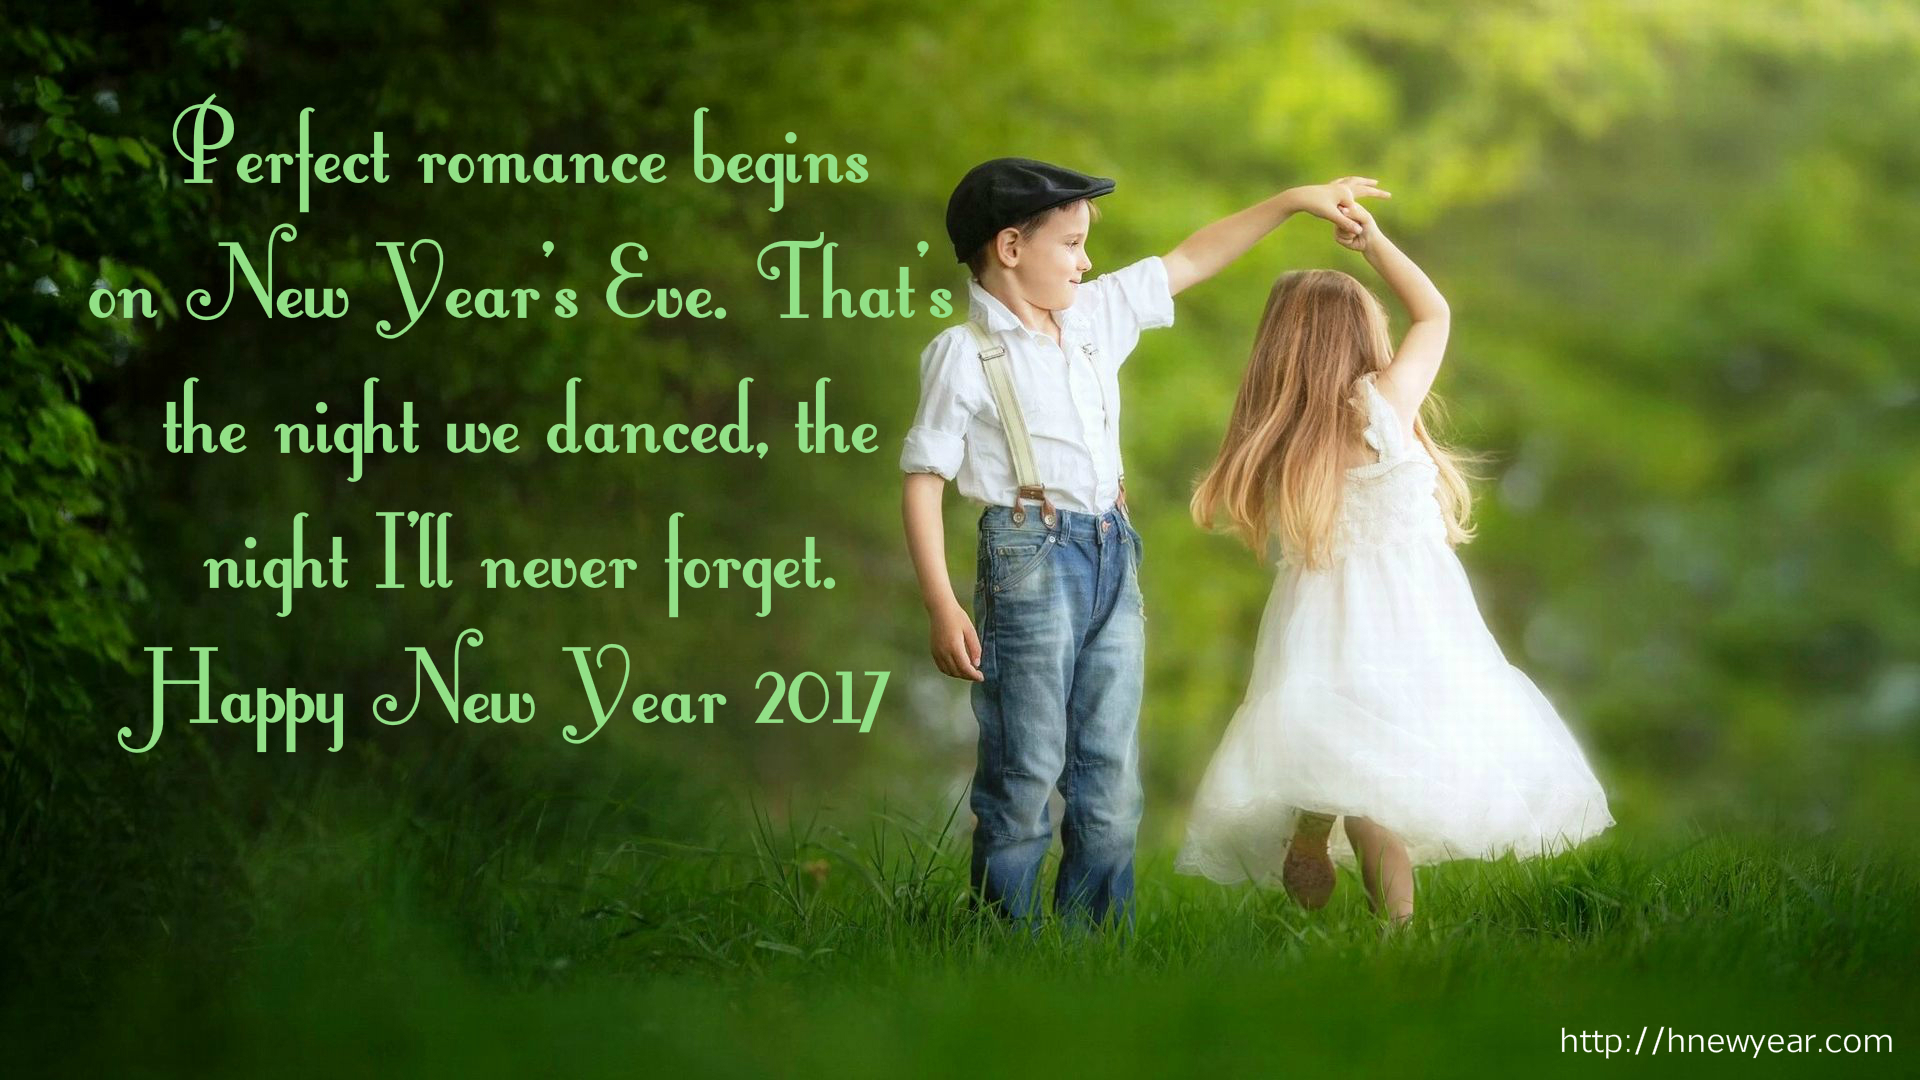 couple new year wishes